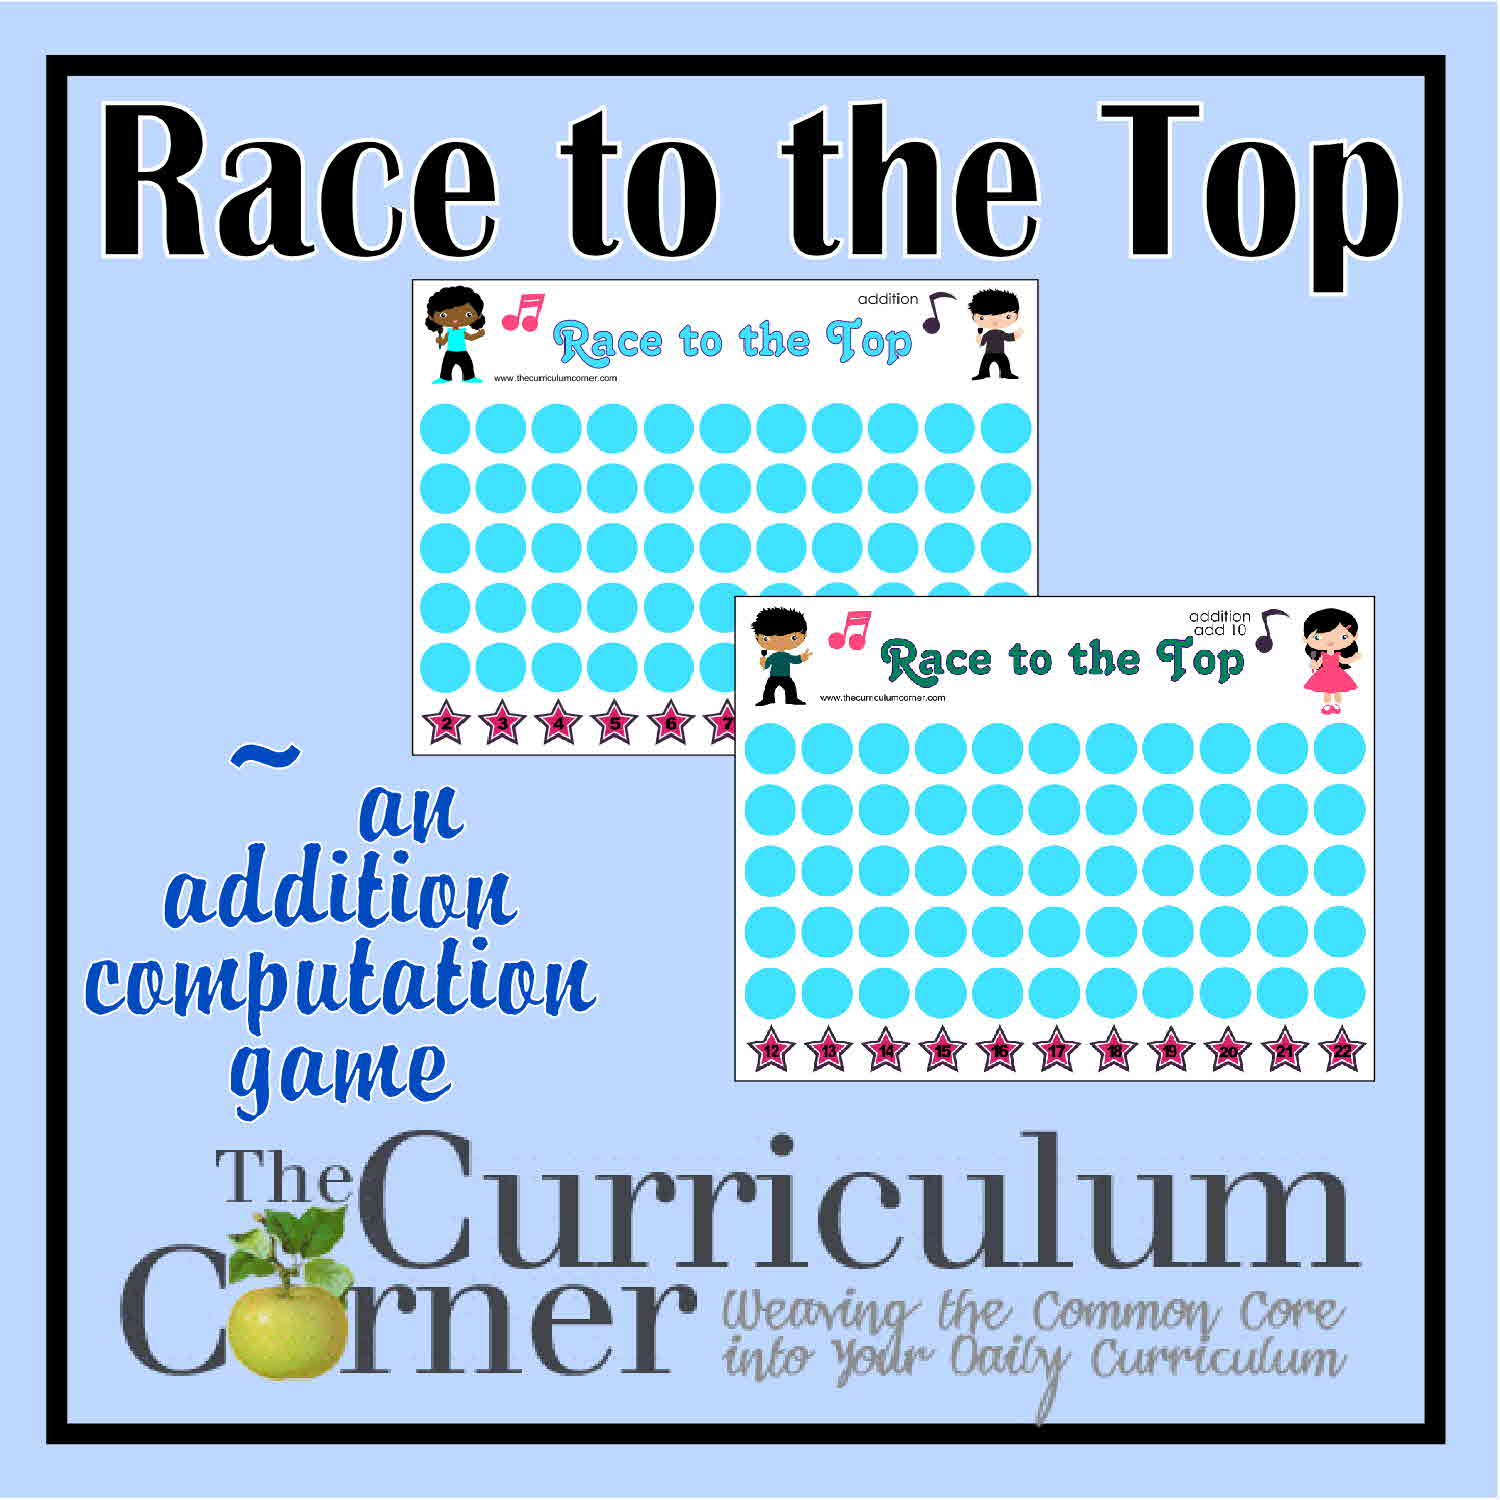 Race to the Top Addition Game - The Curriculum Corner 123